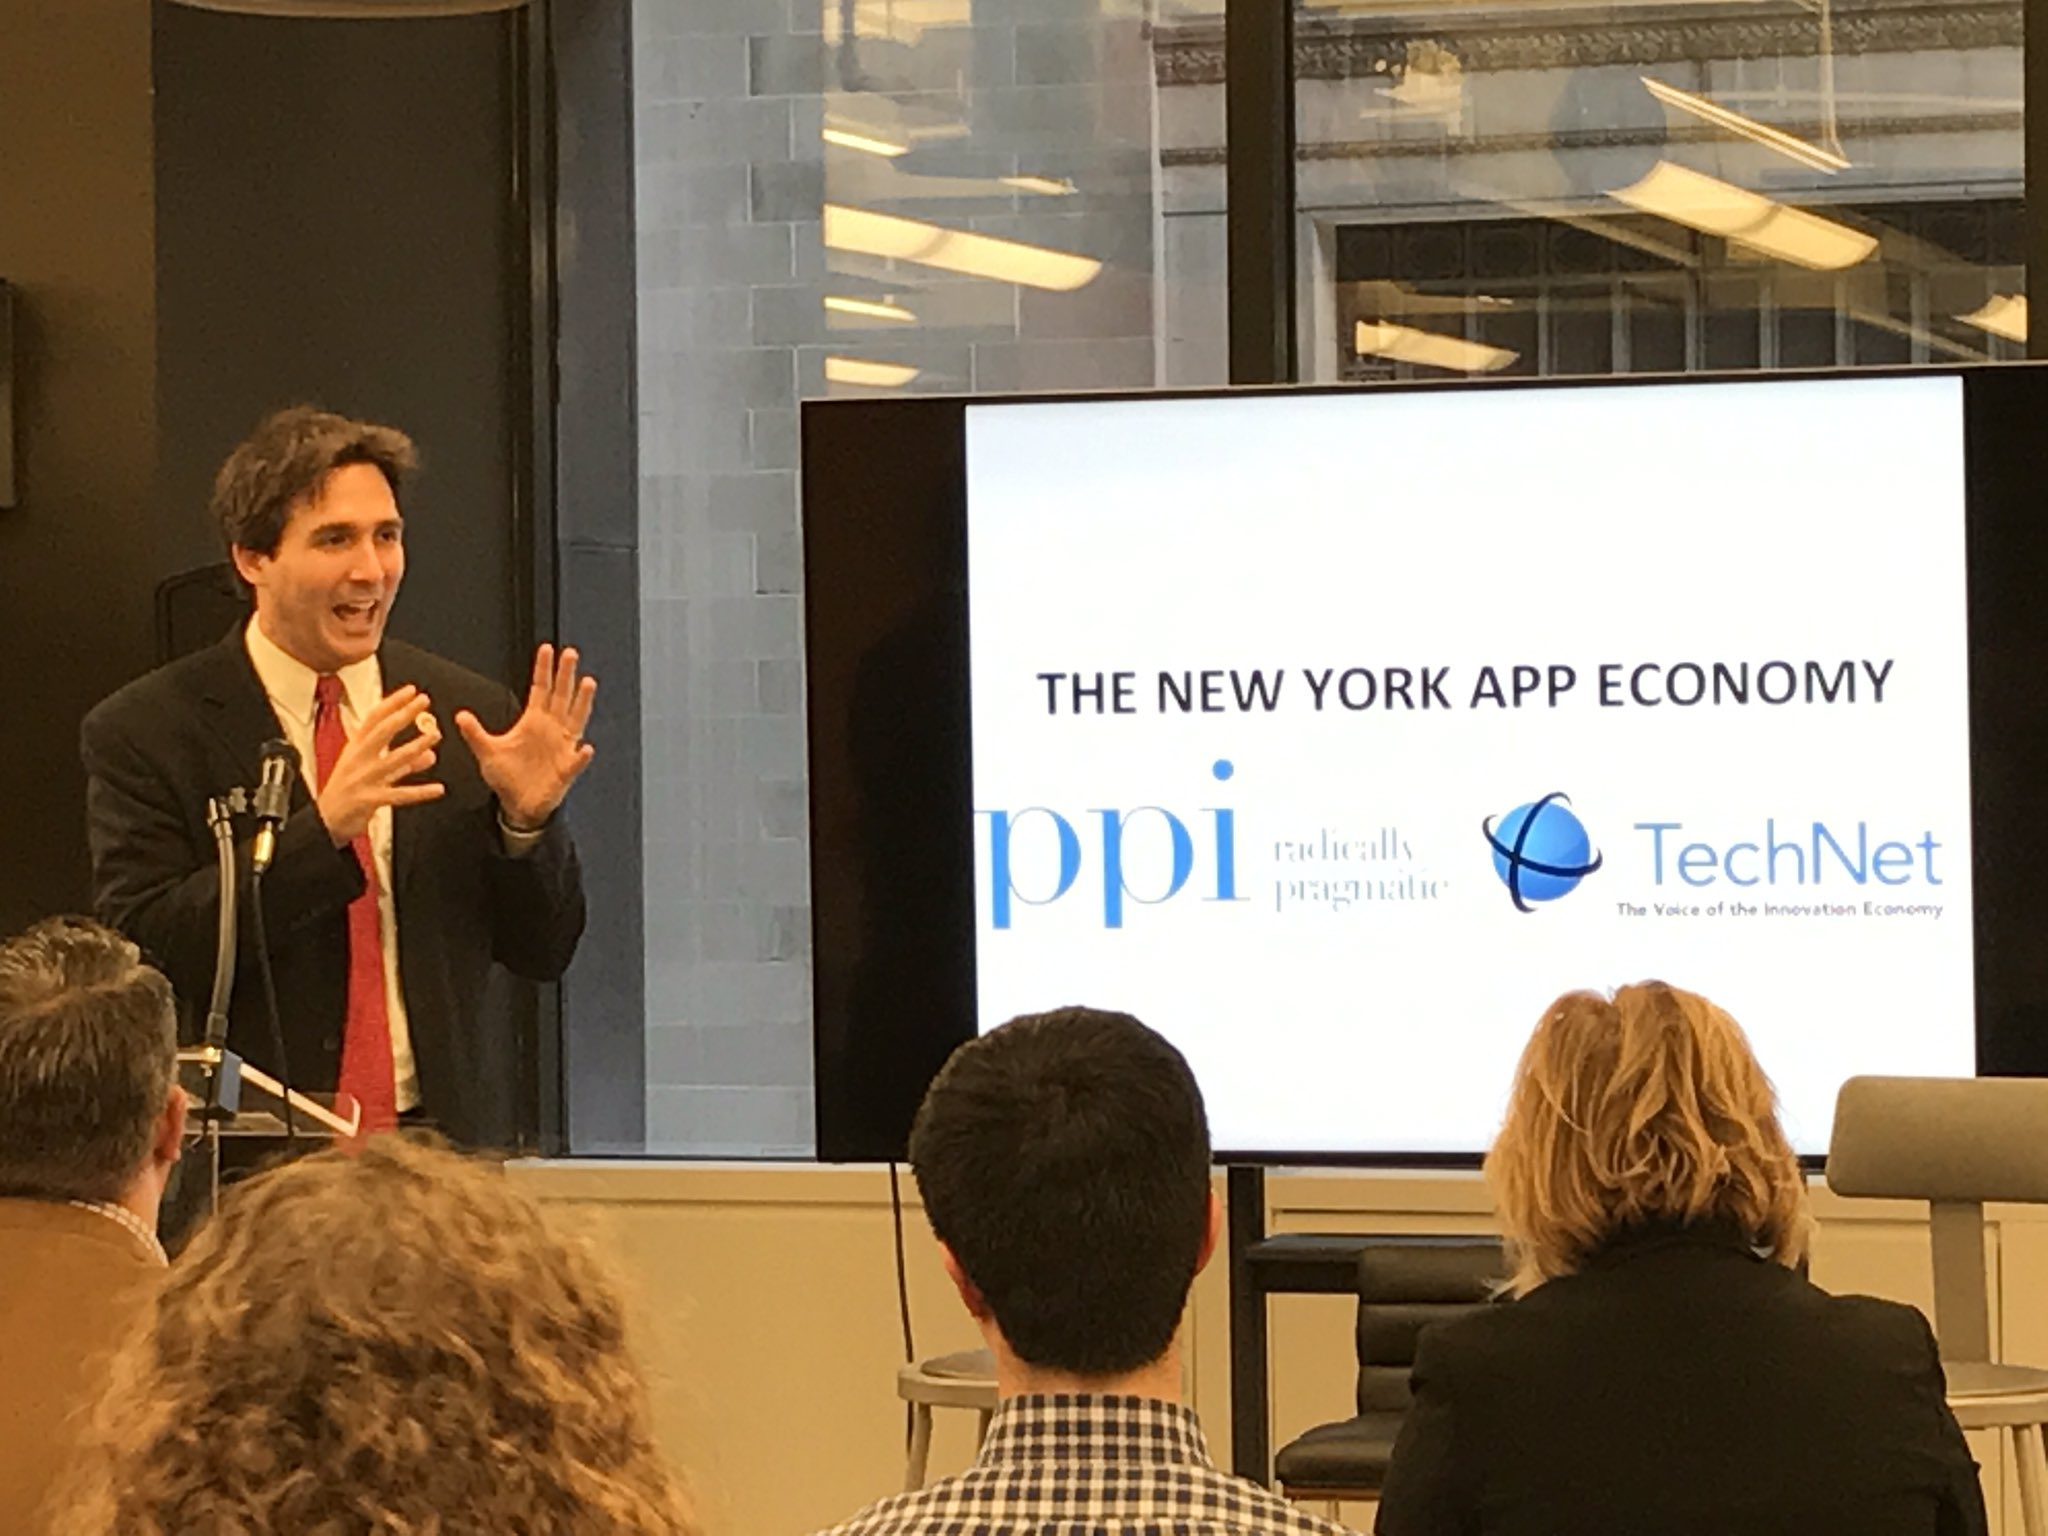 A man after my heart. @BenKallos pushing data-driven decision making in government, open source, public-private partnerships, tech for good. https://t.co/fMT5OMO5Jh